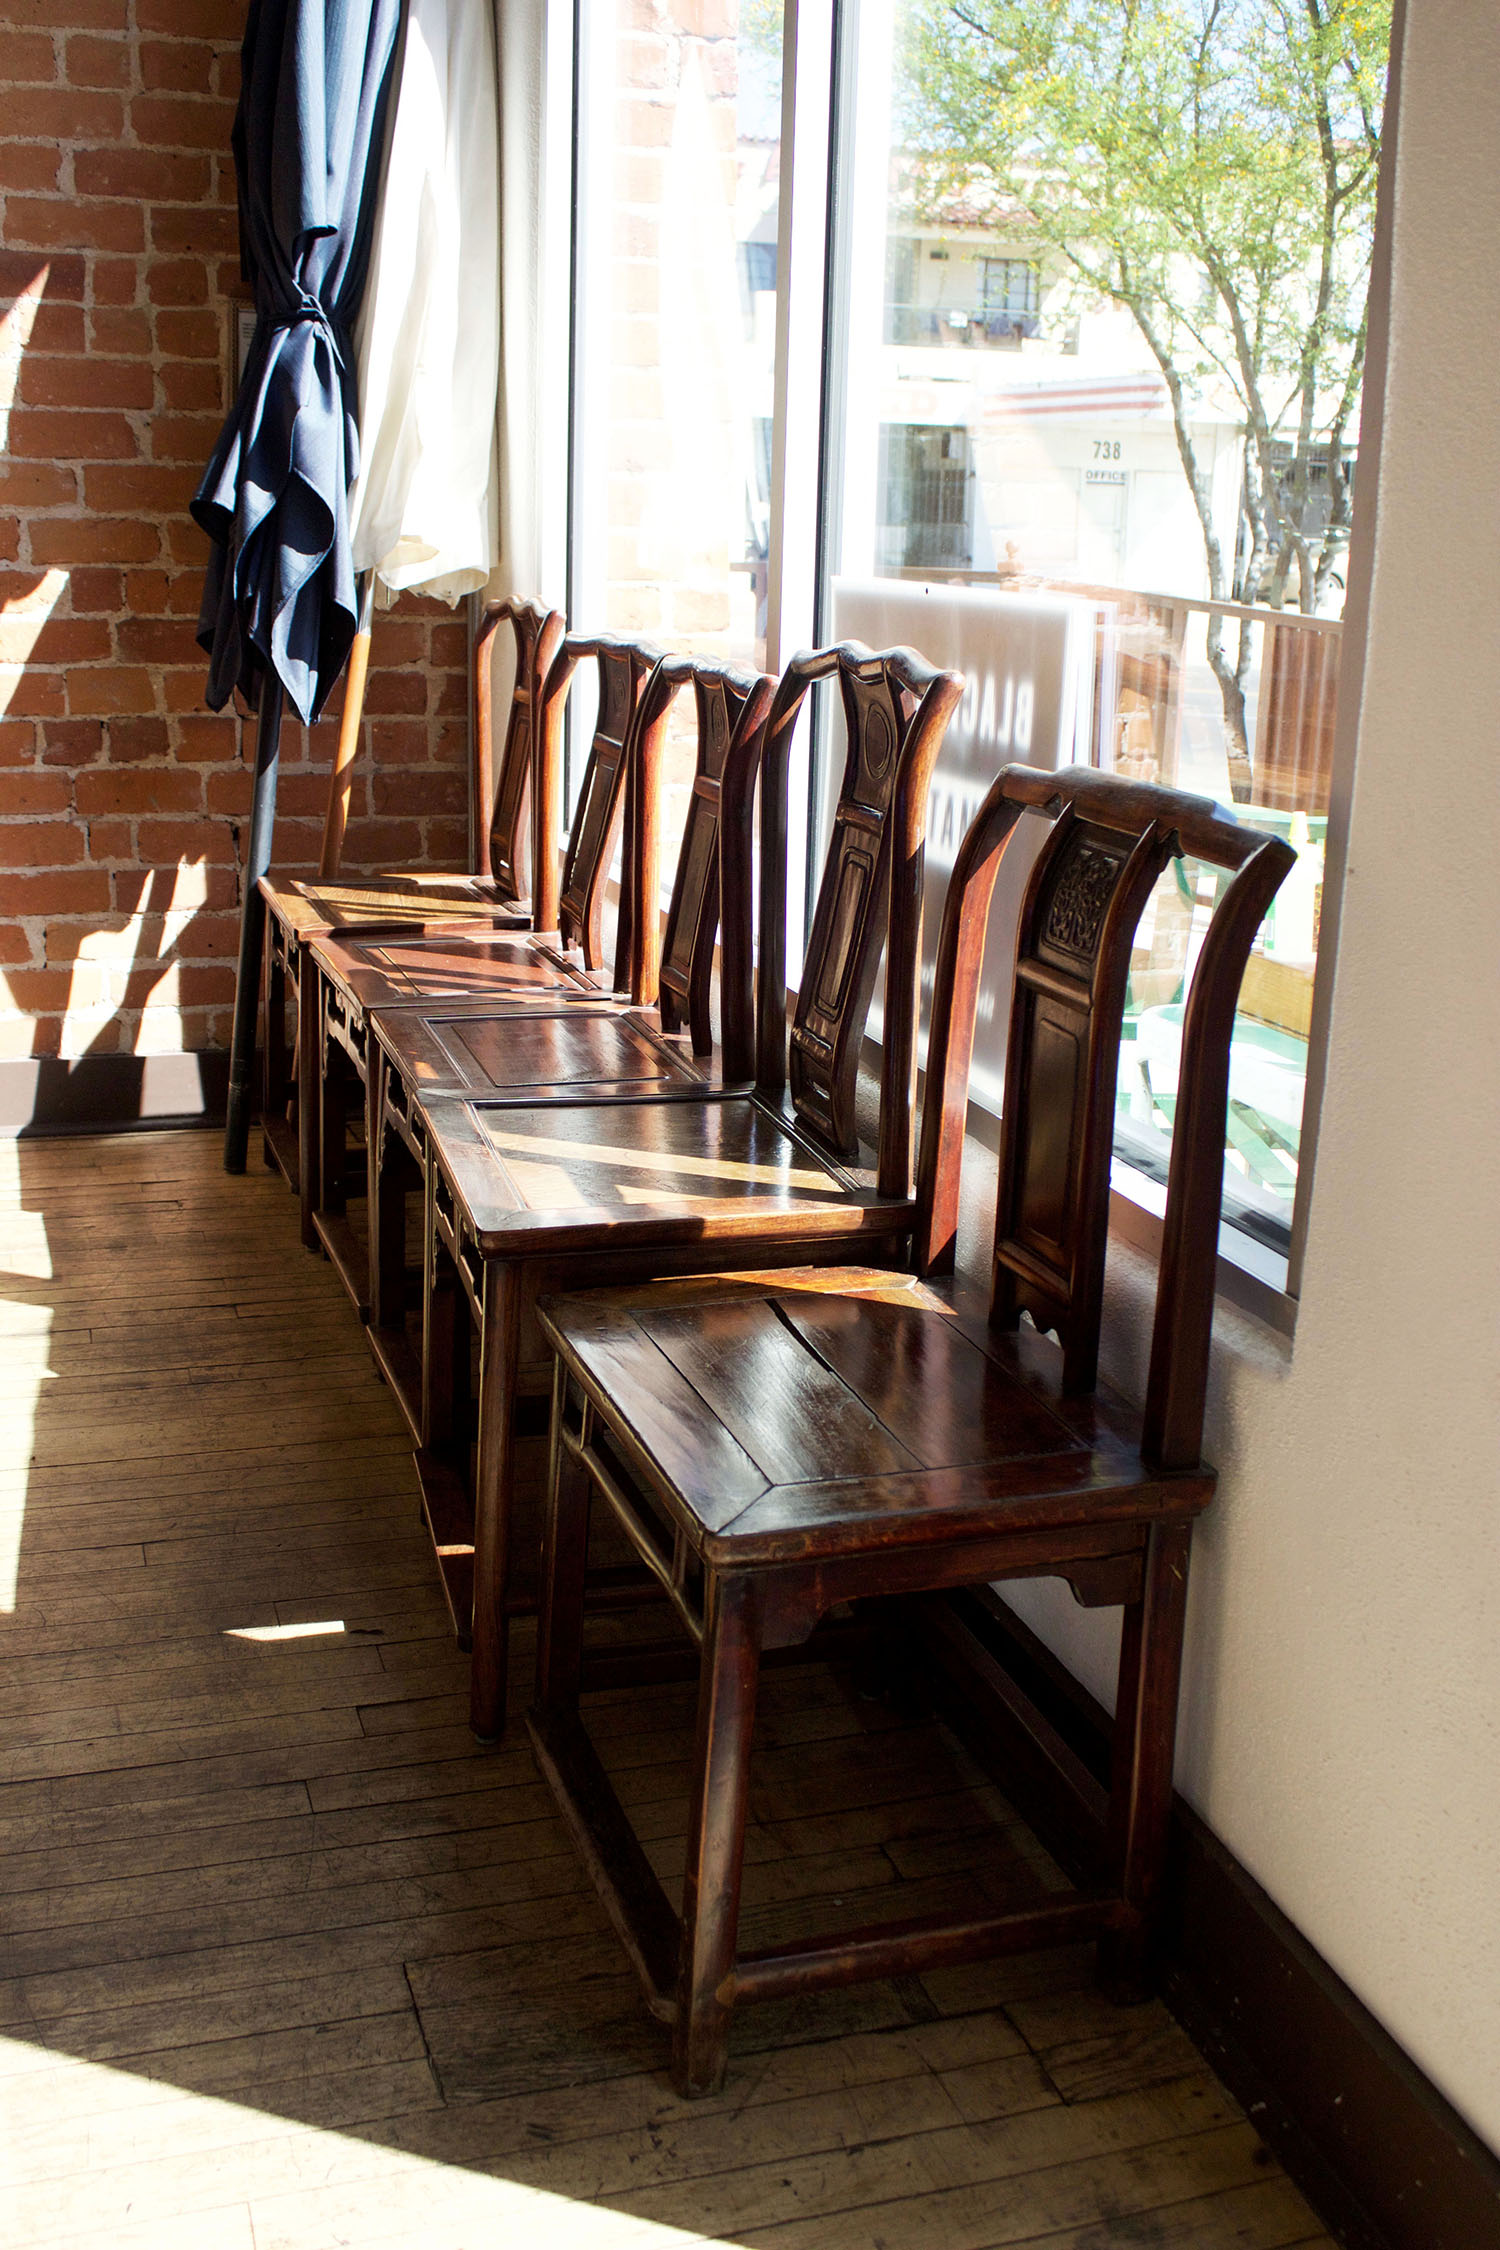 Abundant natural light creates the perfect setting to enjoy brunch with friends.